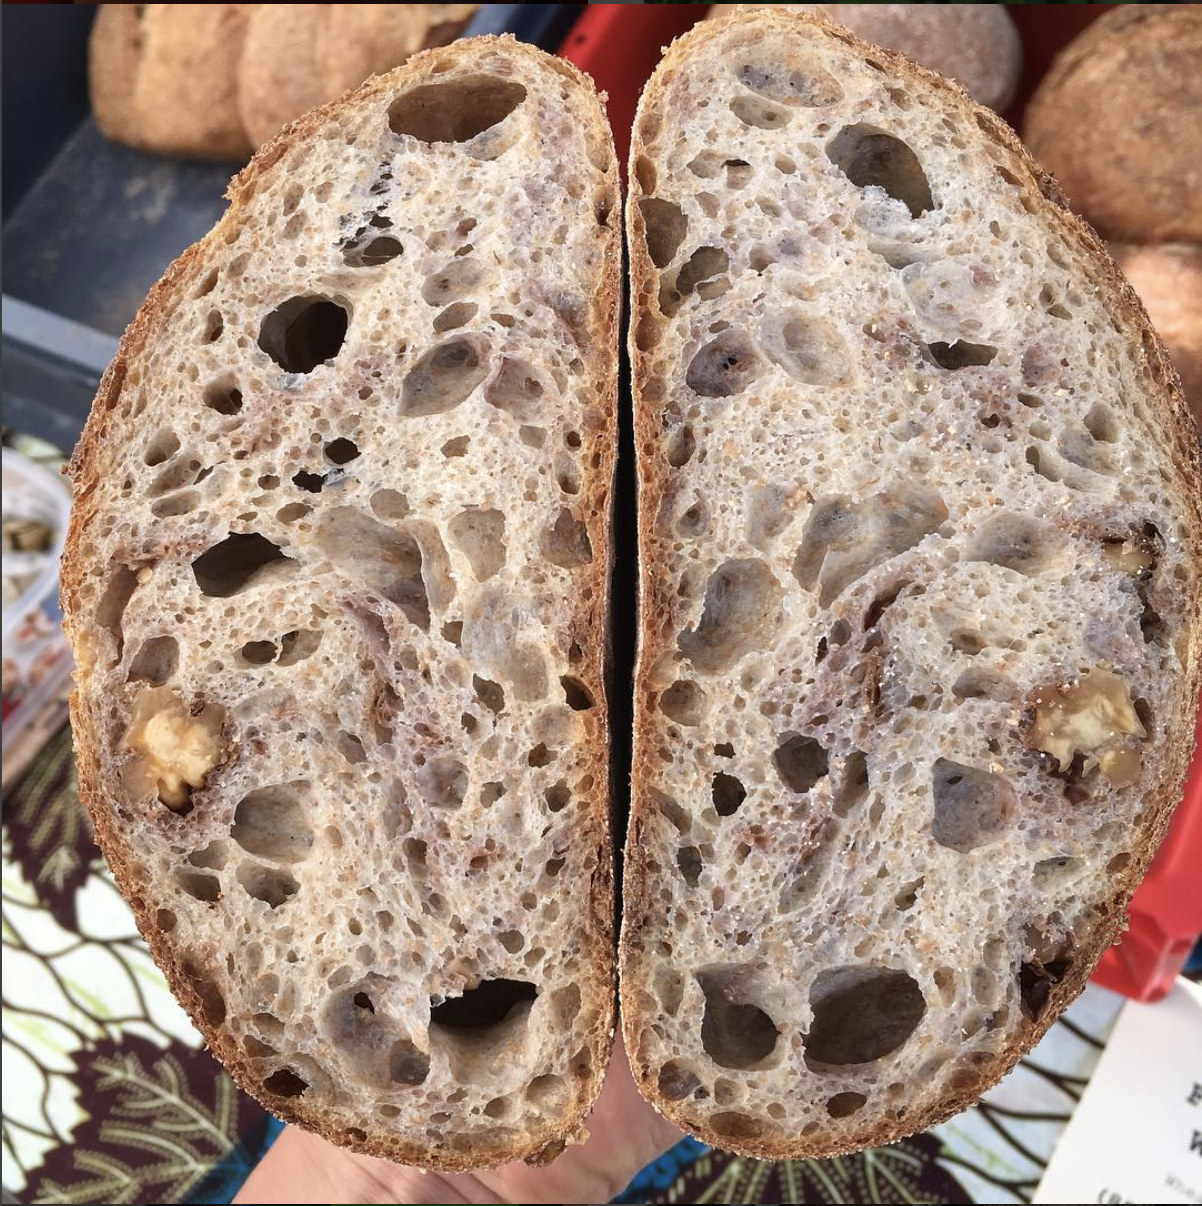 Walnut MAch sourdough - Full of toasted walnuts. Made with the same dough as the Mach Sourdough. This loaf is perfect with cheese, sweet preserves and nut butters, and toasted with ricotta and a drizzle of honey. Tasty sourdough with fresh and crunchy walnuts thrown in.(550g. Wheat (gluten), walnuts, salt)